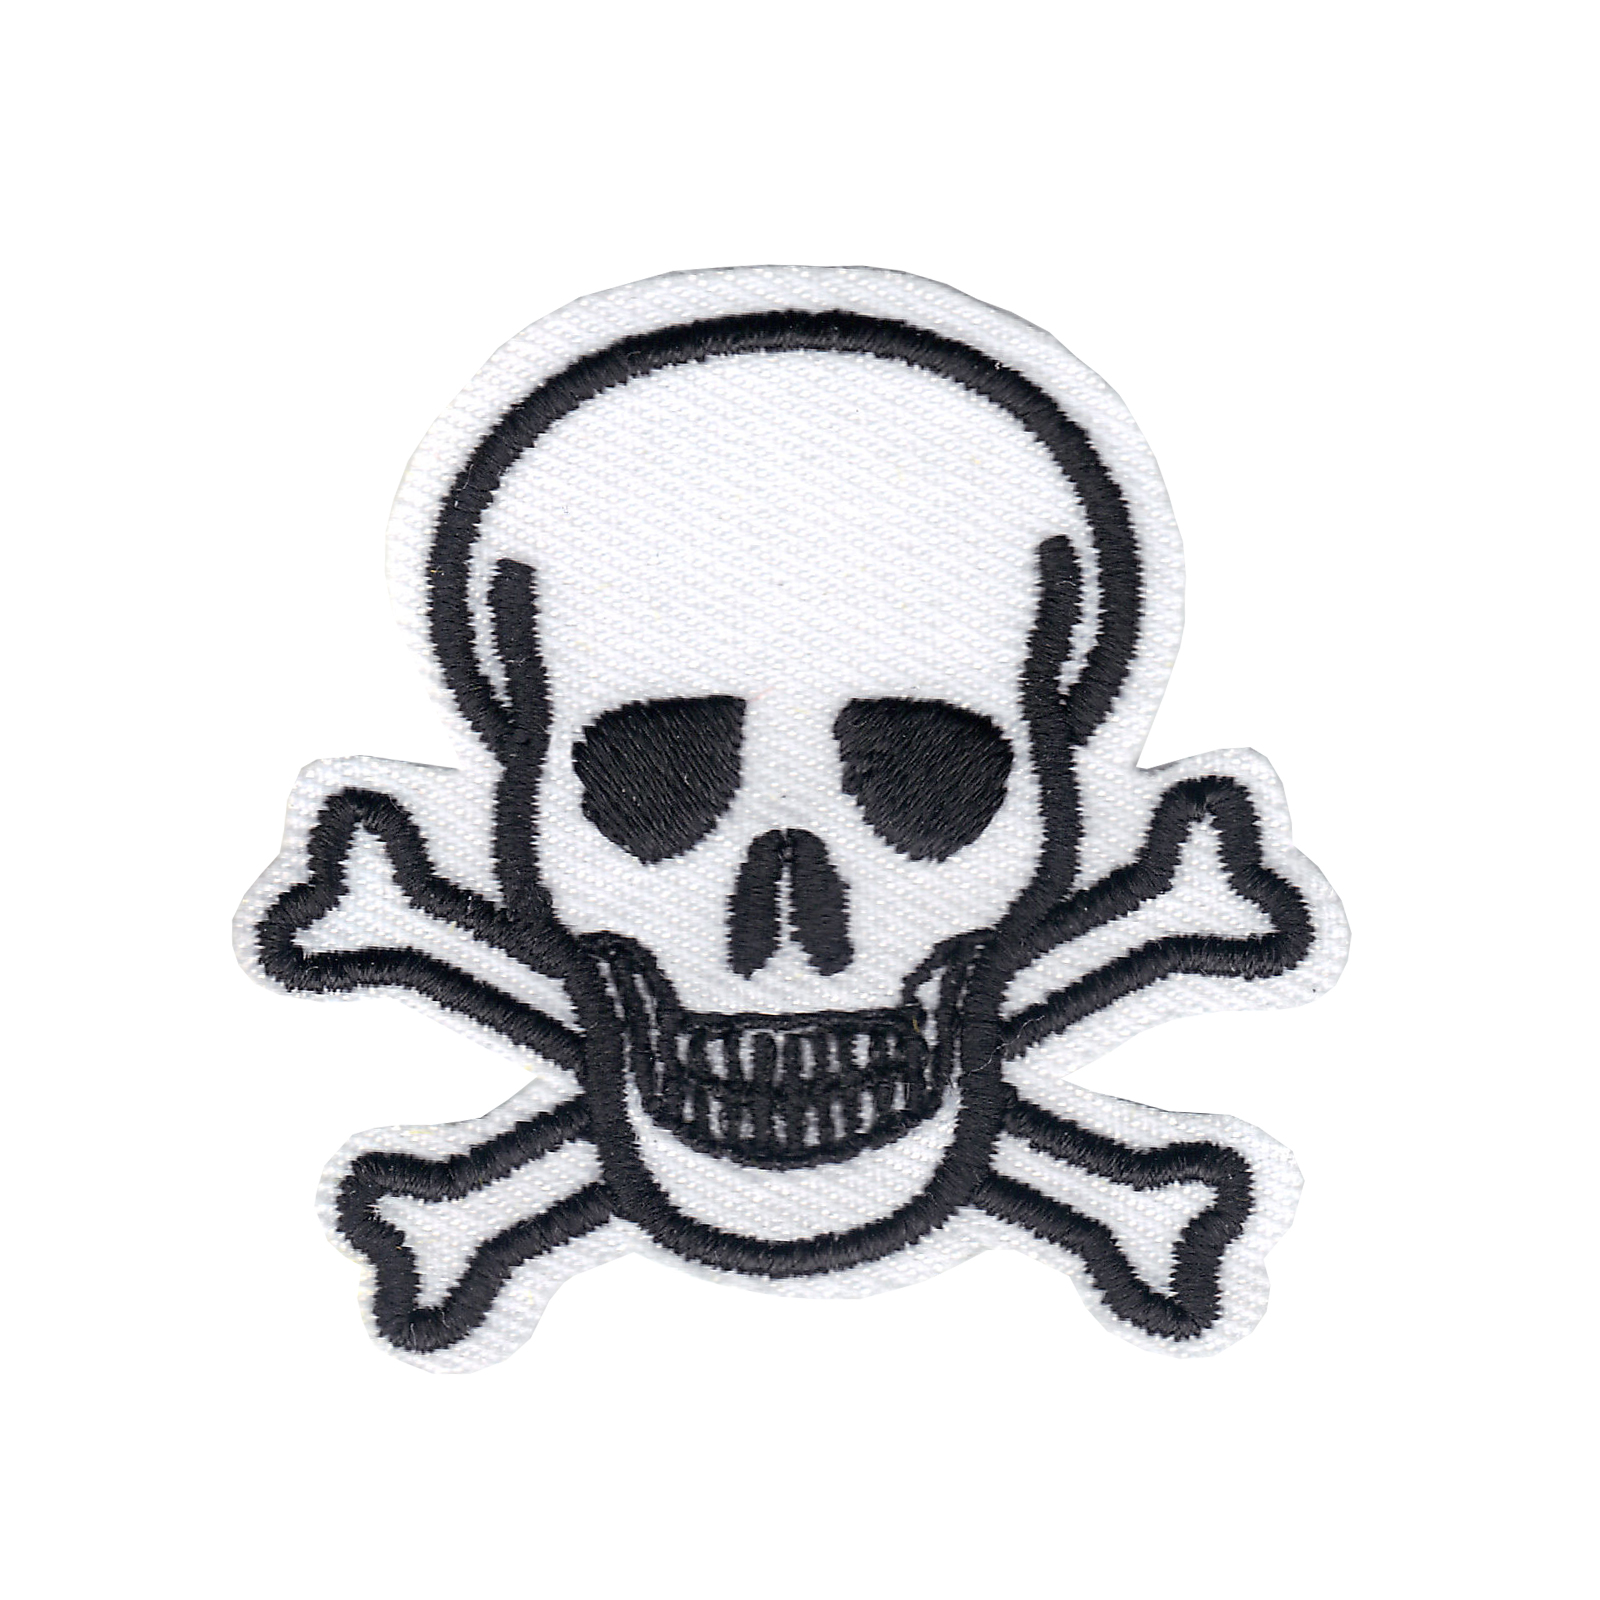 Skull and Crossbones Iron On Applique Patch